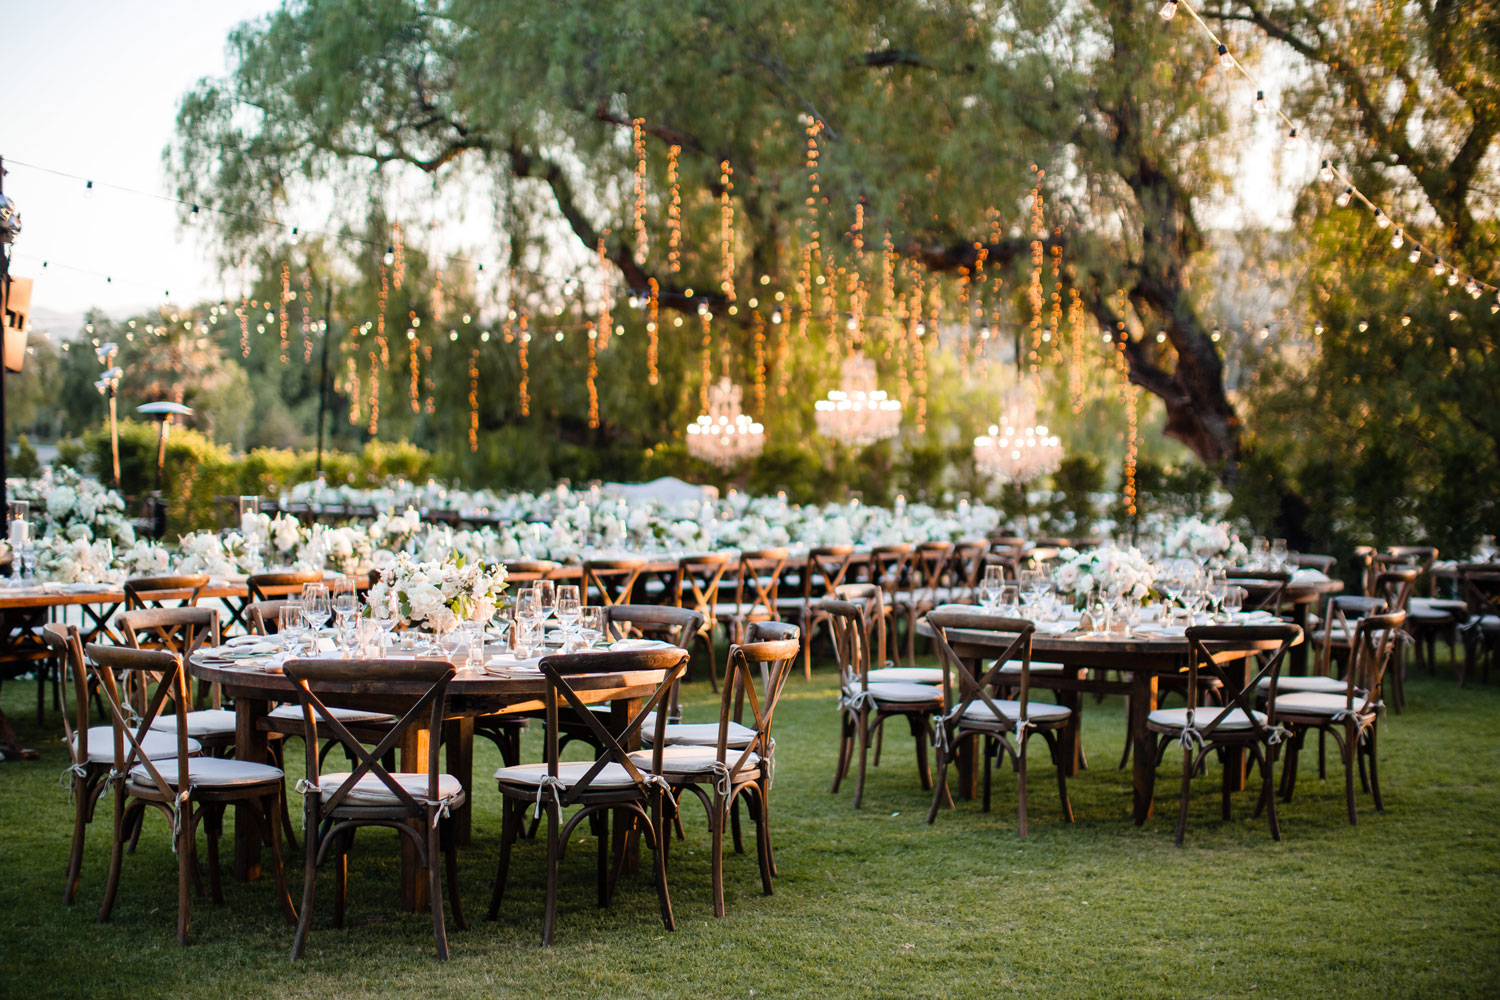 wedding reception outside twinkle lights vineyard wood chairs tables of 11 tessa lyn events